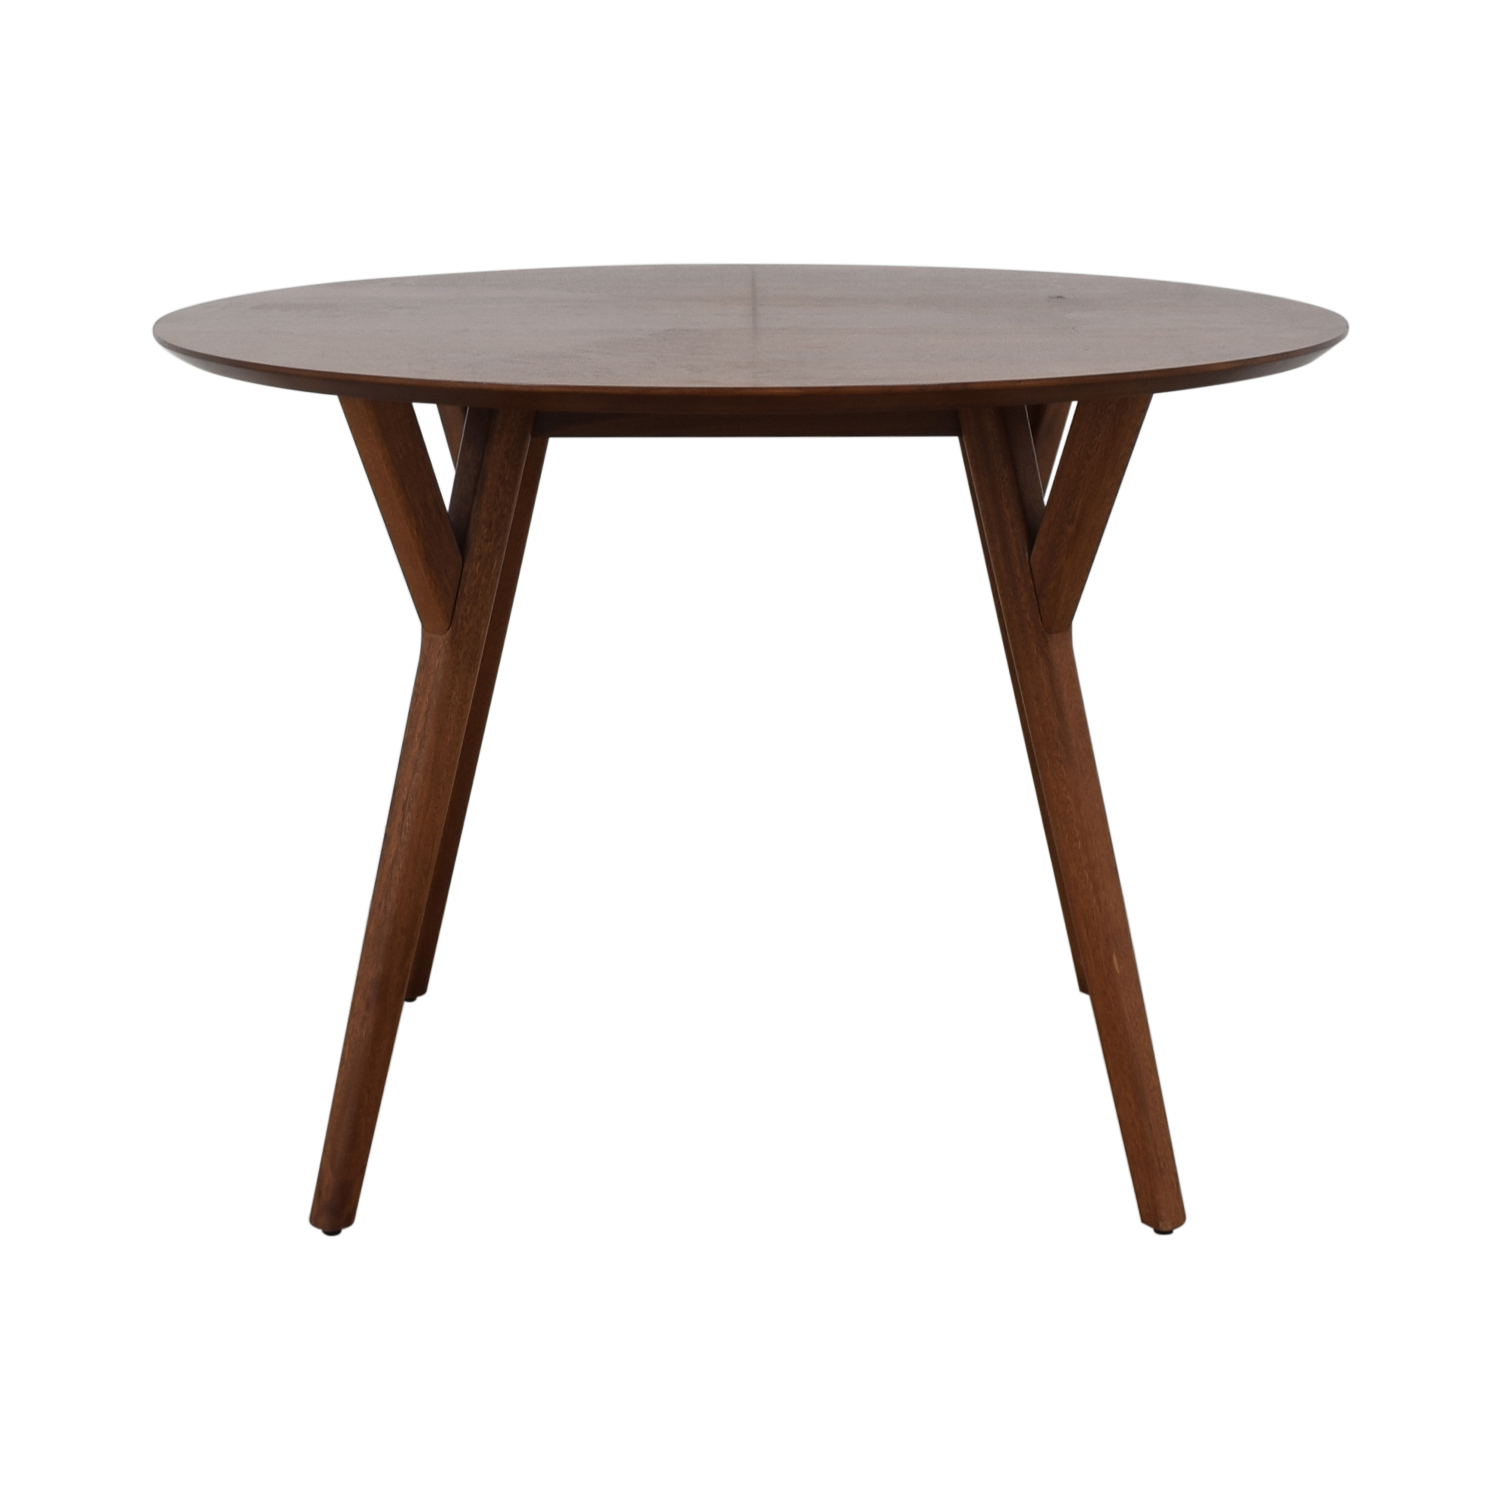 West Elm West Elm Dining Room Table for sale